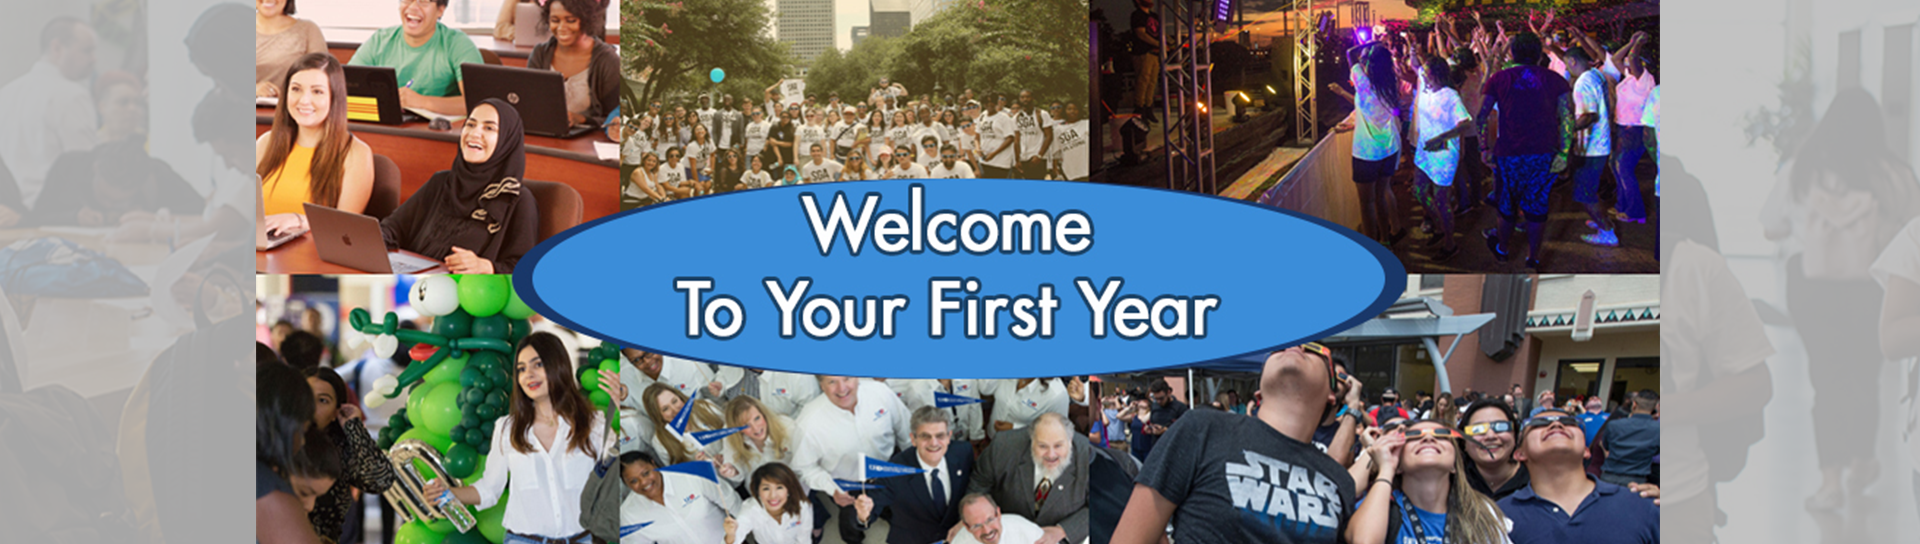 First Year Experience Banner: Welcome To Your First Year